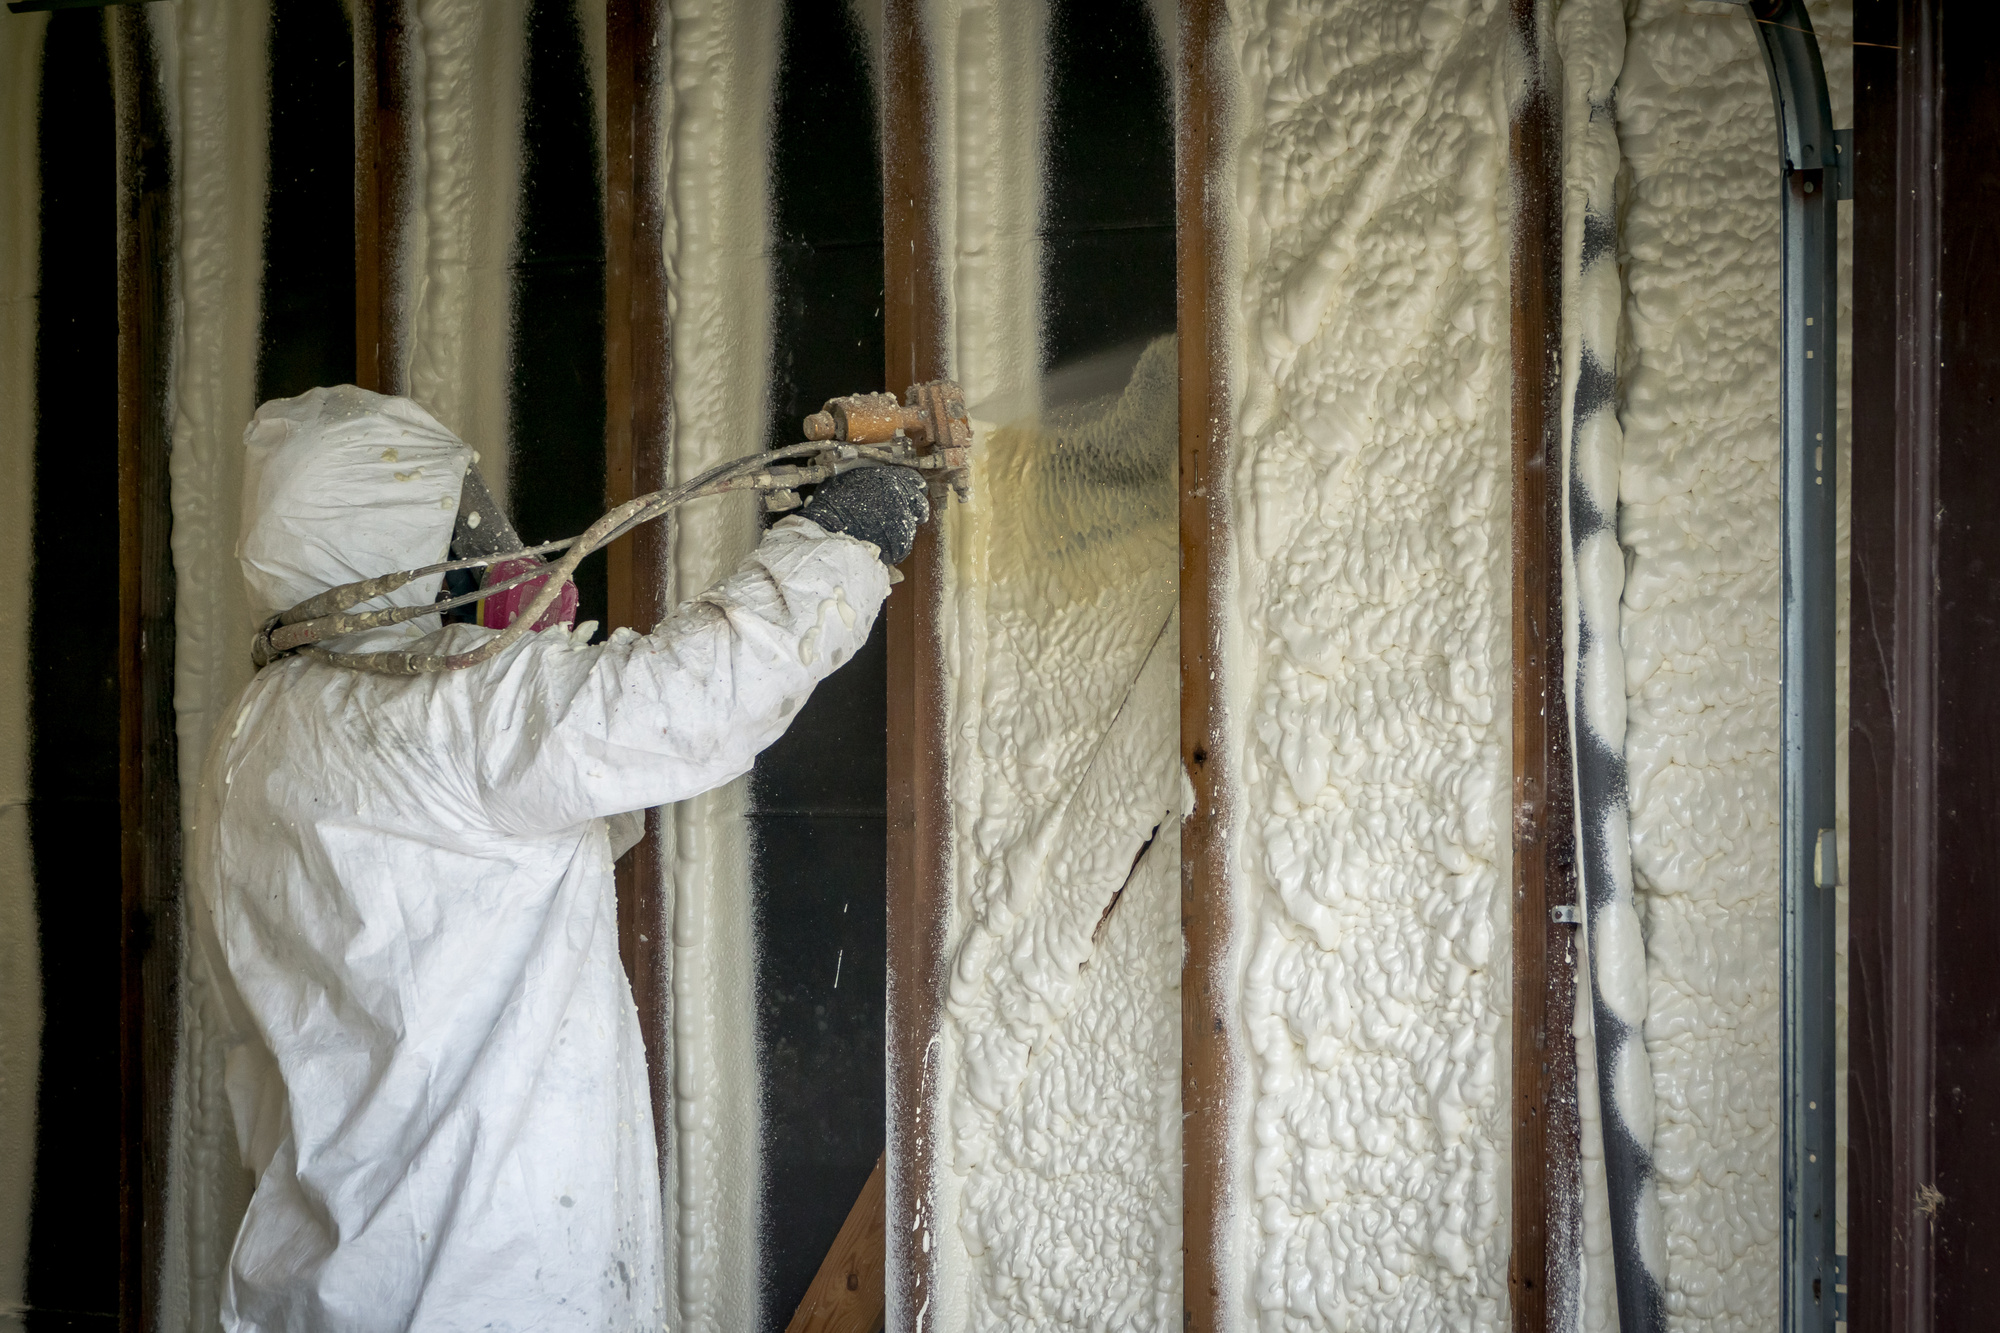 Insulating Your Home for the First Time? Here Are Tips When Using Spray Foam Insulation